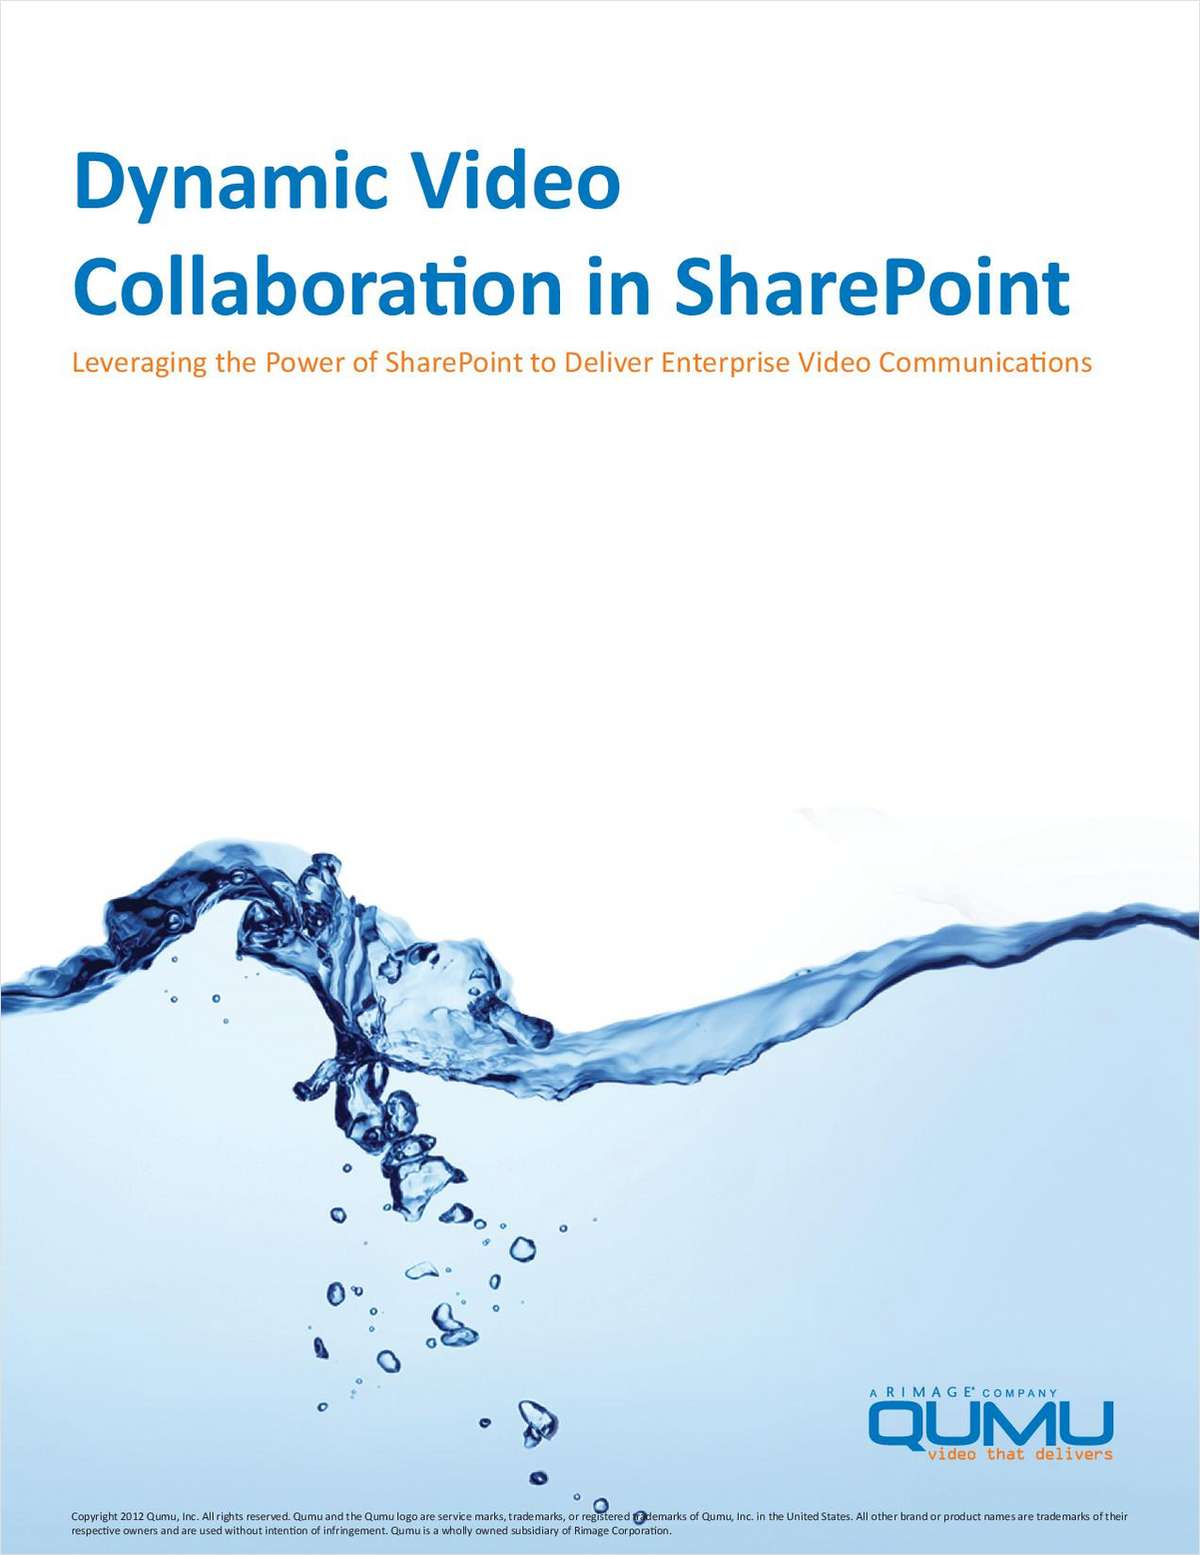 Leverage the Power of SharePoint to Deliver Enterprise Video Communications and Encourage Collaboration